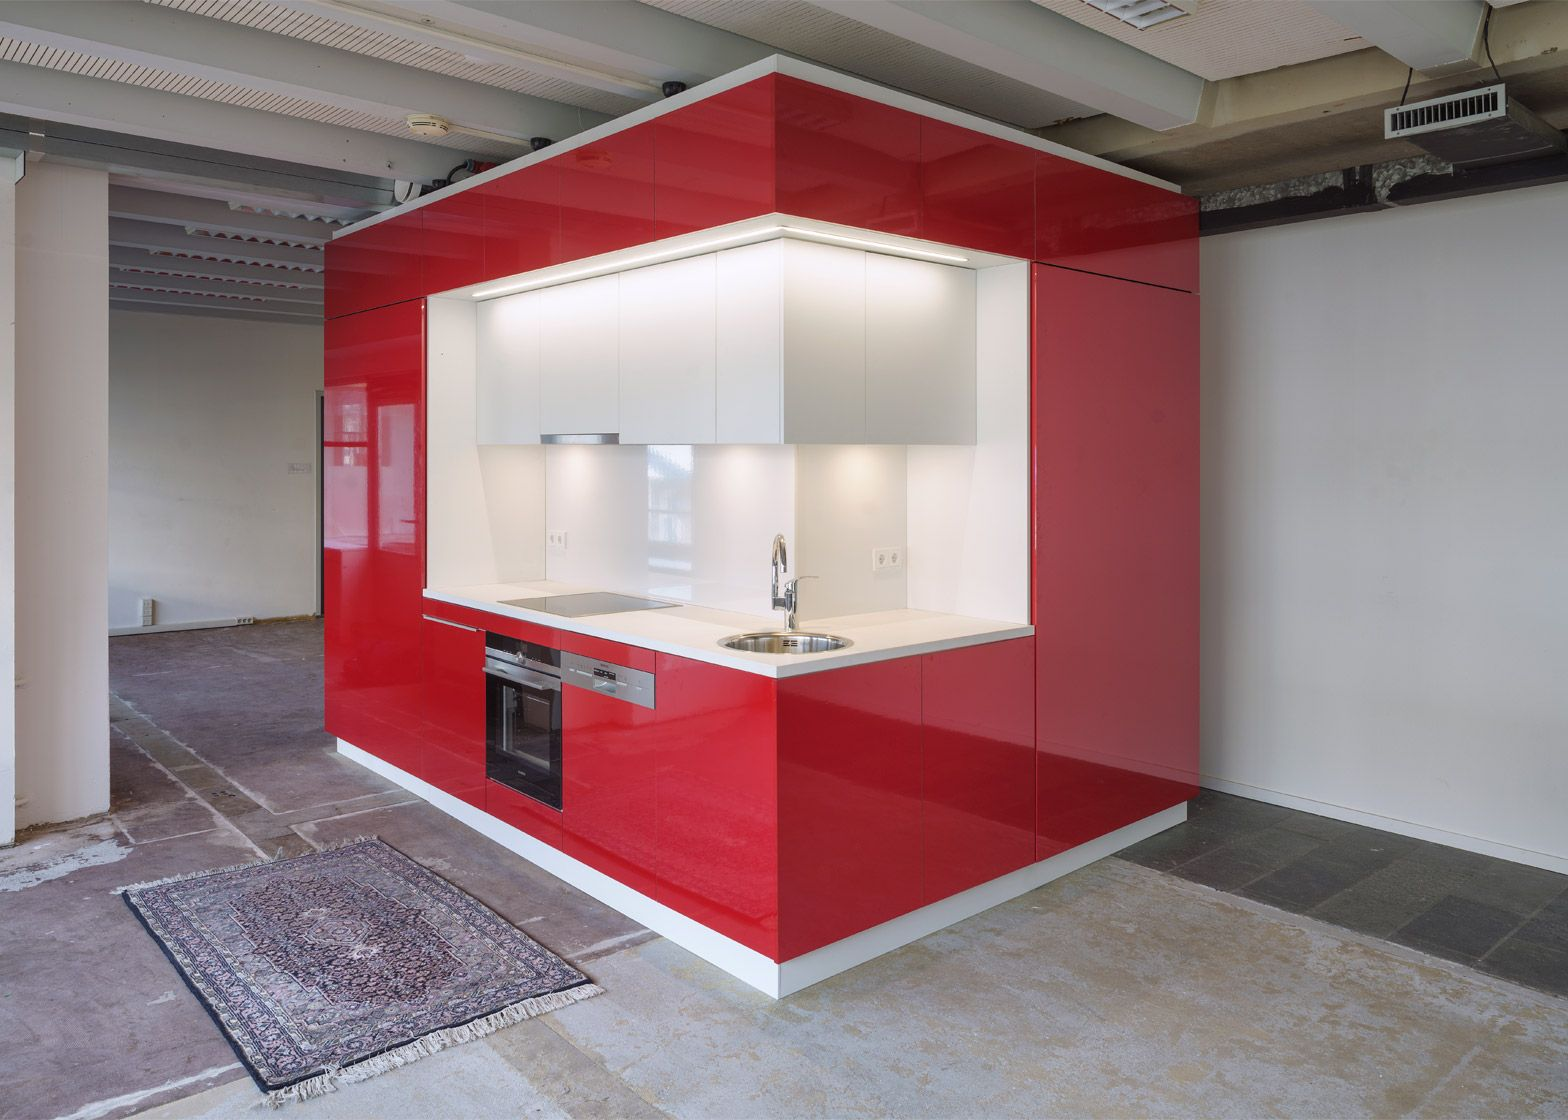 Atelier modular kitchens - Abandoned Buildings Can Be Converted Into Modular Homes